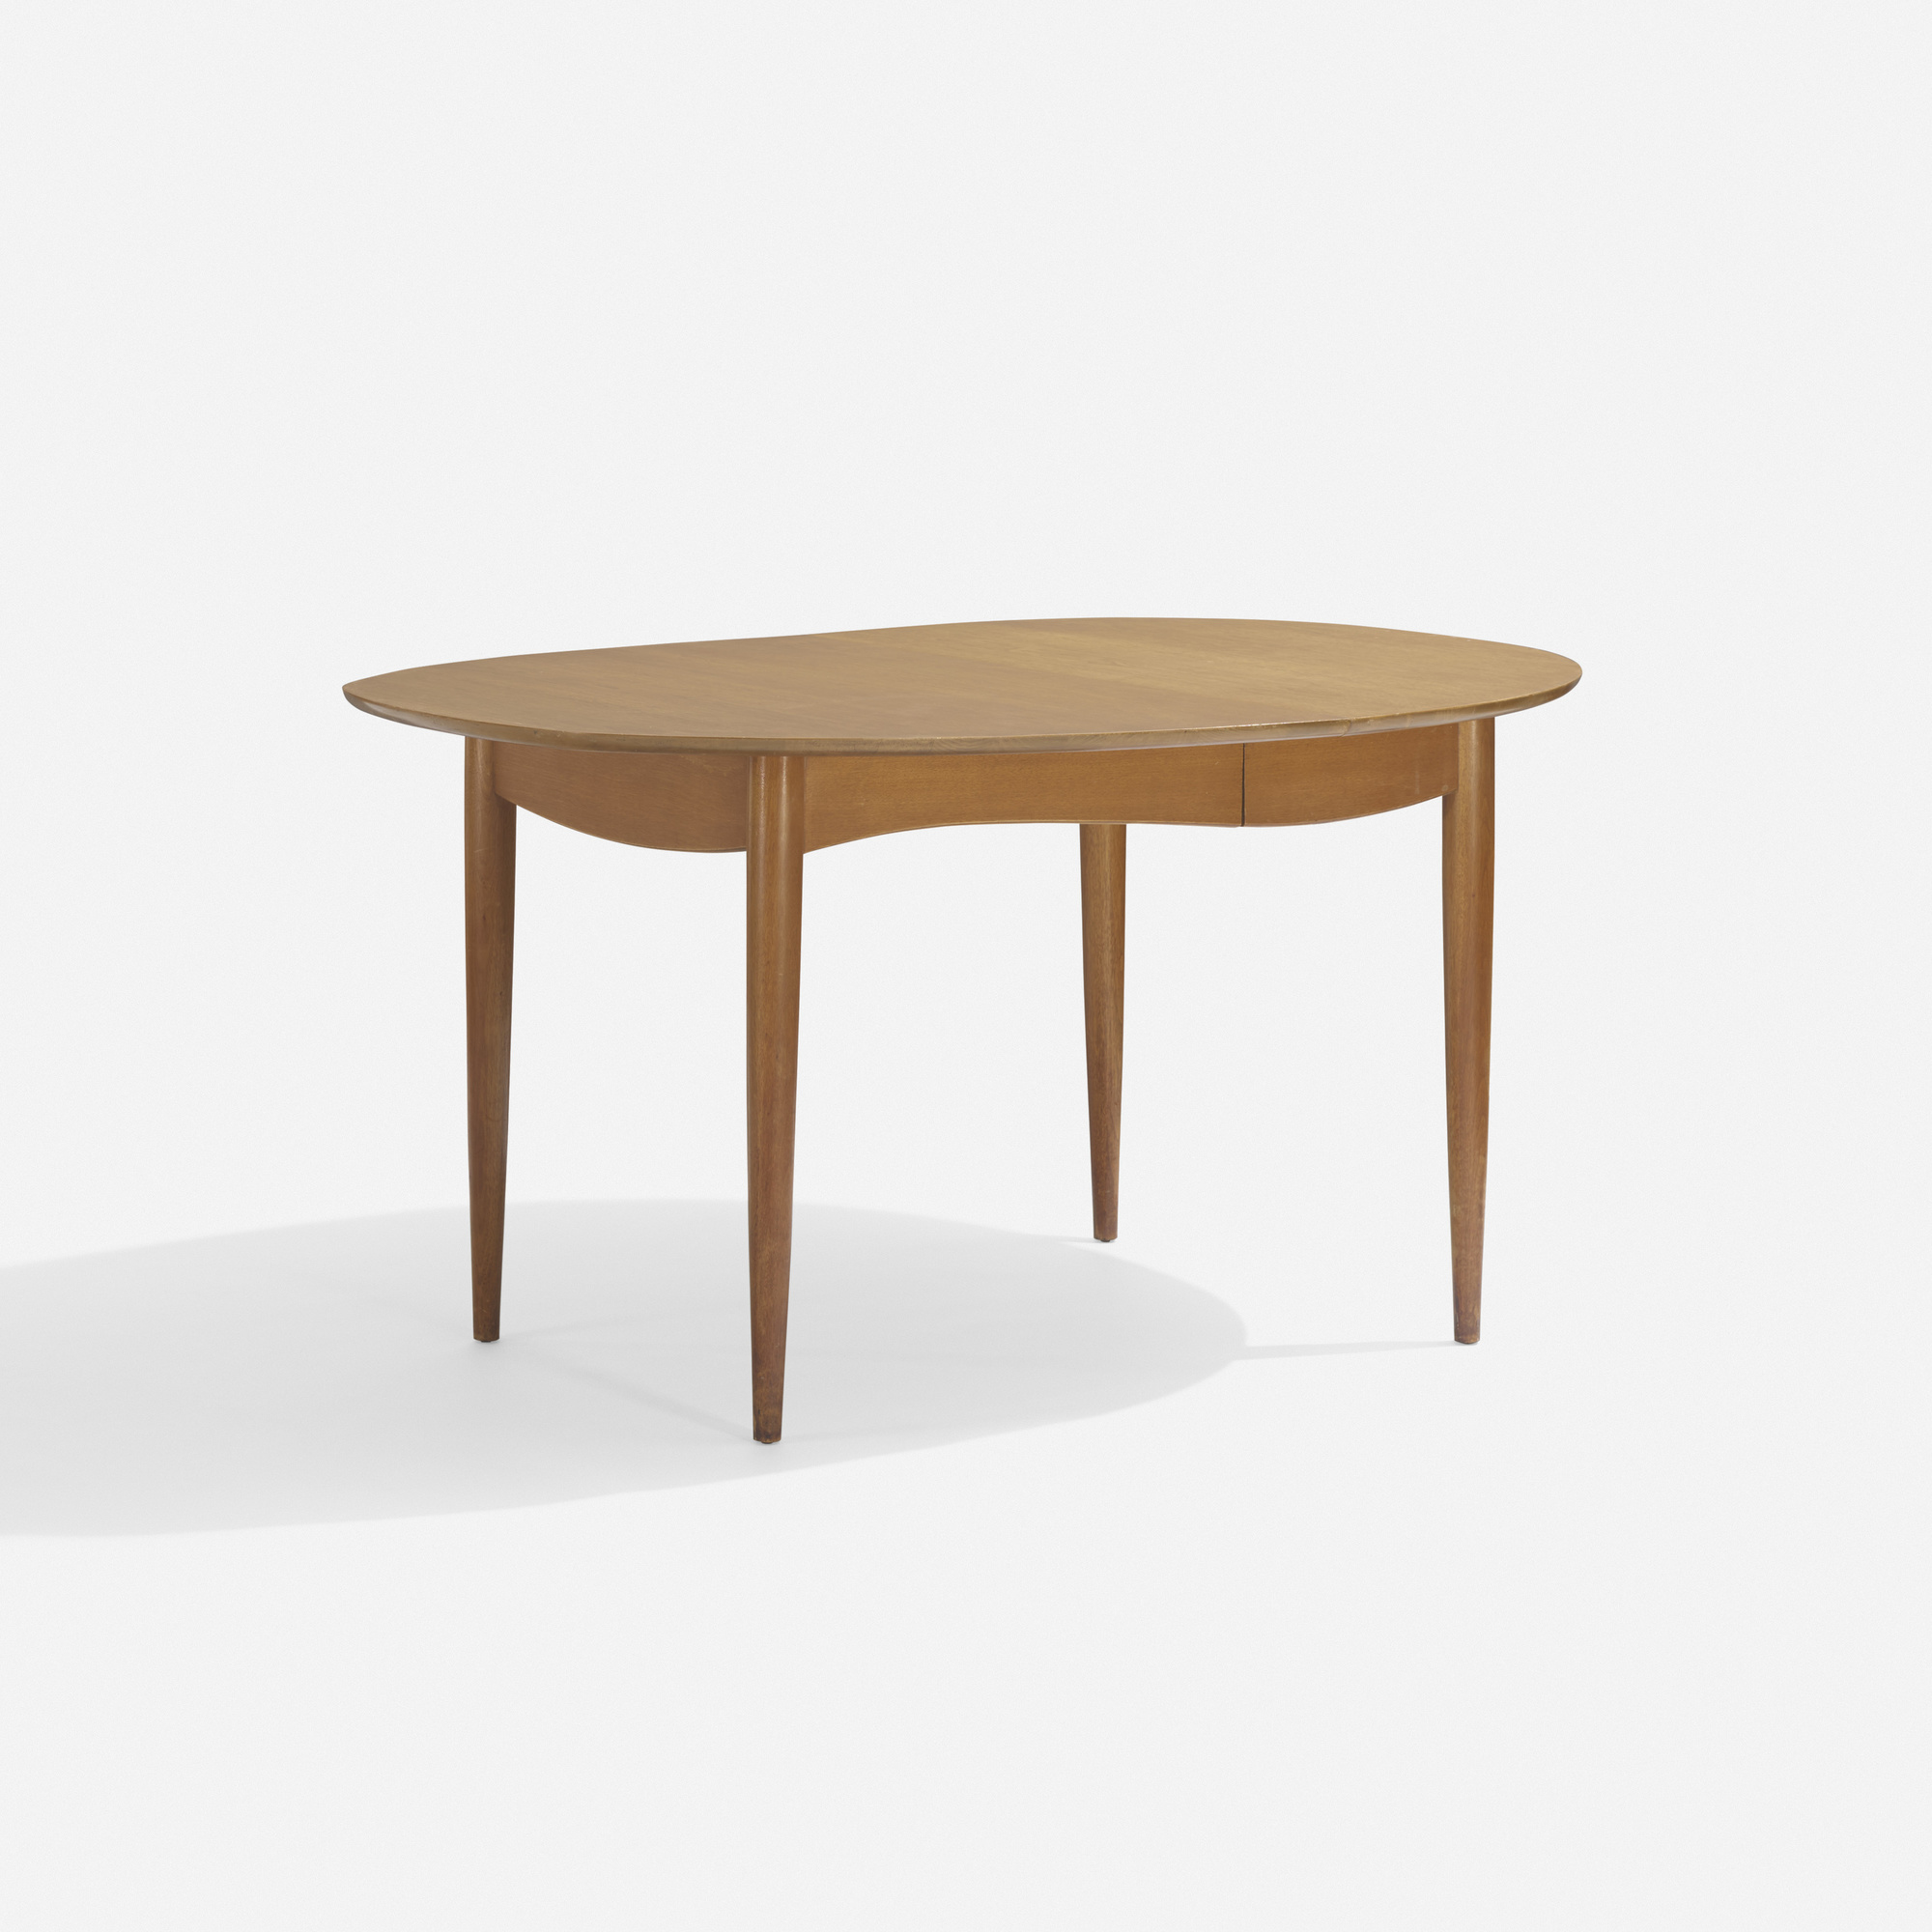 136: In the manner of Finn Juhl / dining table (1 of 2)